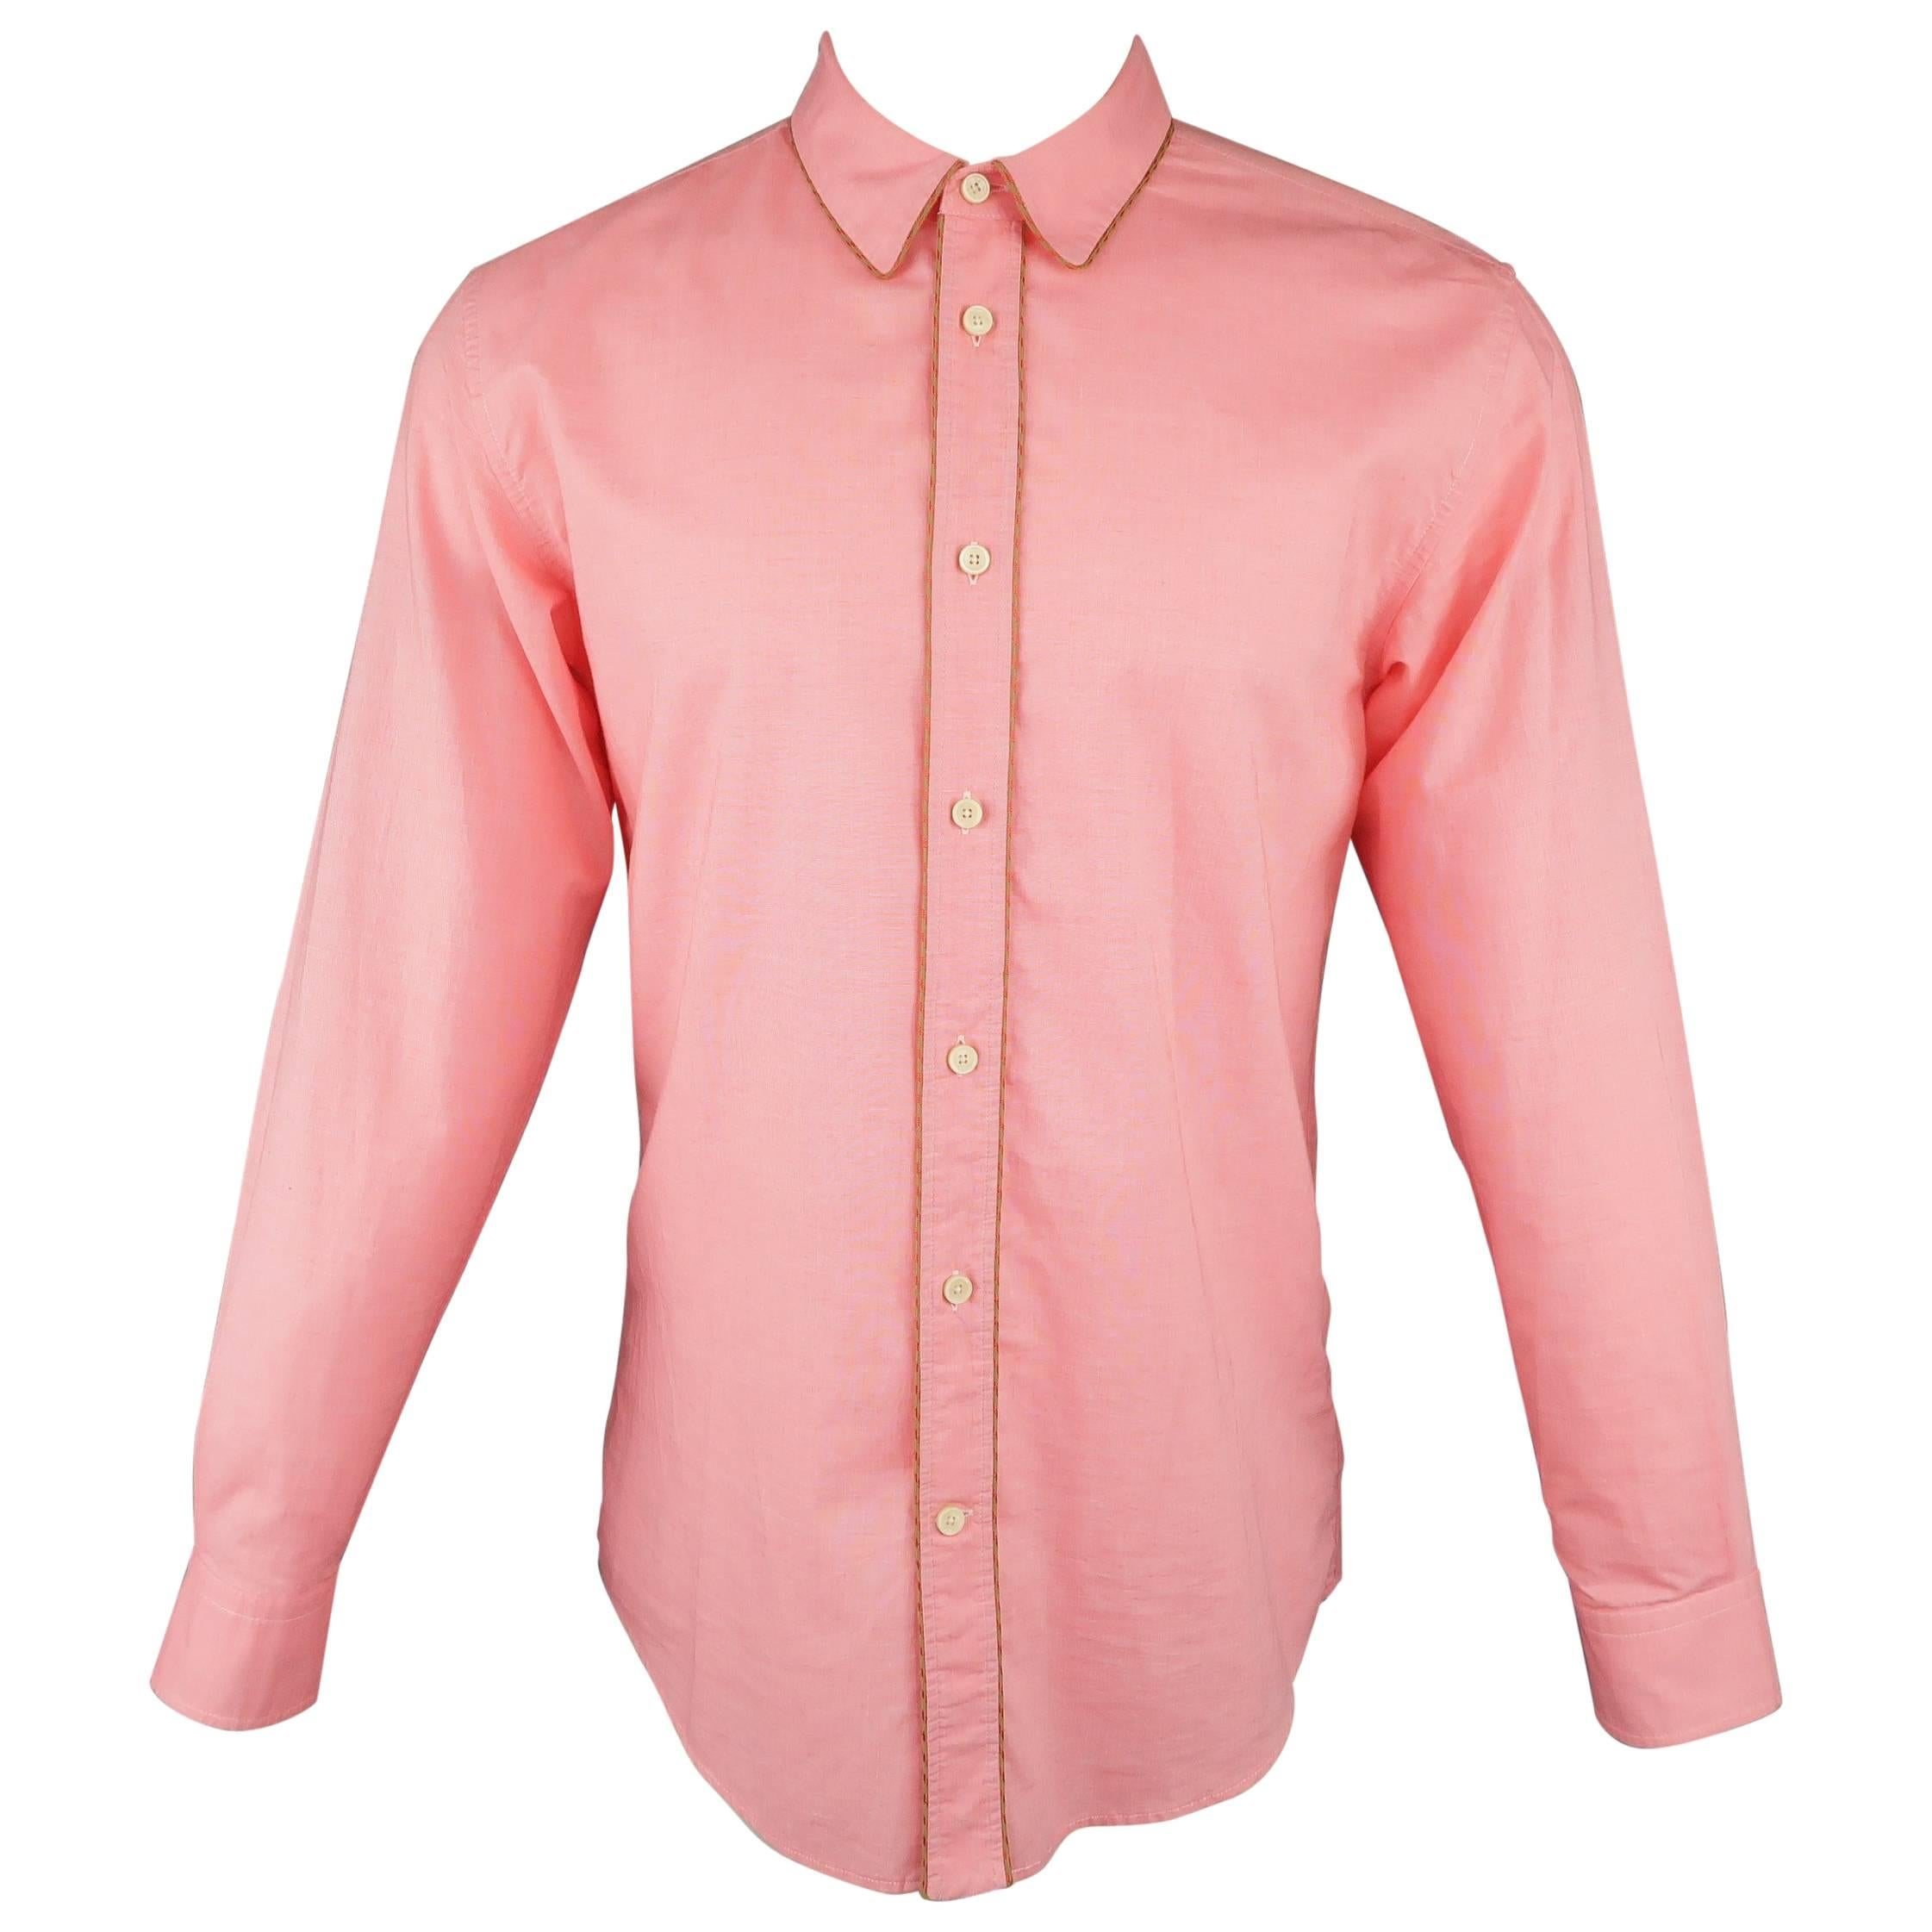 bell sleeve shirt - Pink & Purple Marc Jacobs Discount Fashionable QRE8A